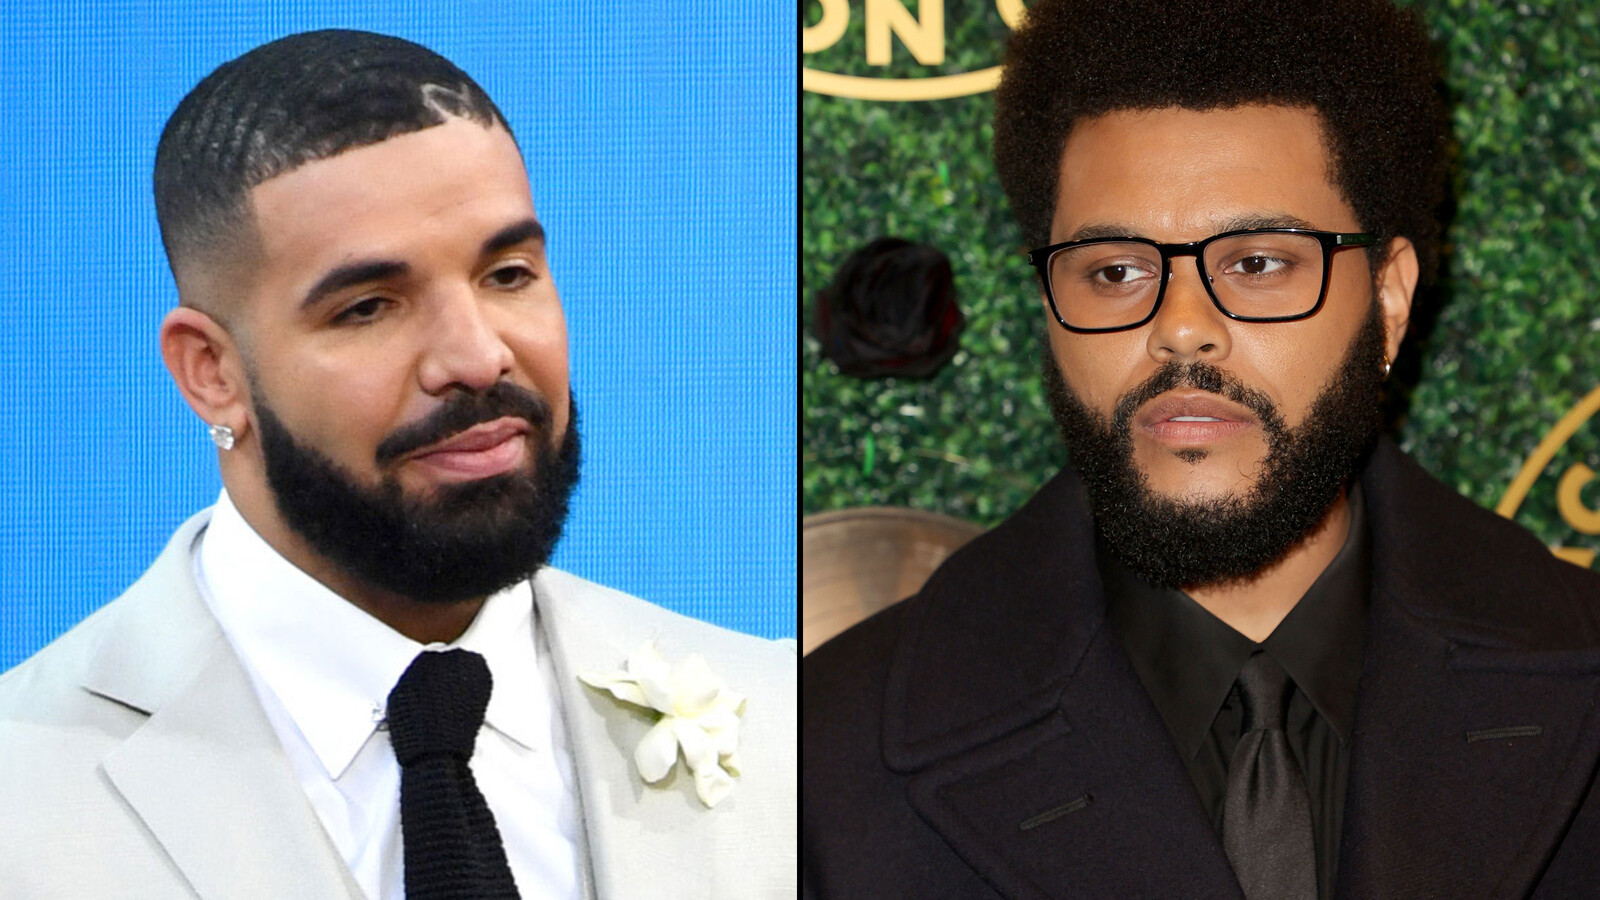 A university in Canada is offering a class about Drake and the Weeknd